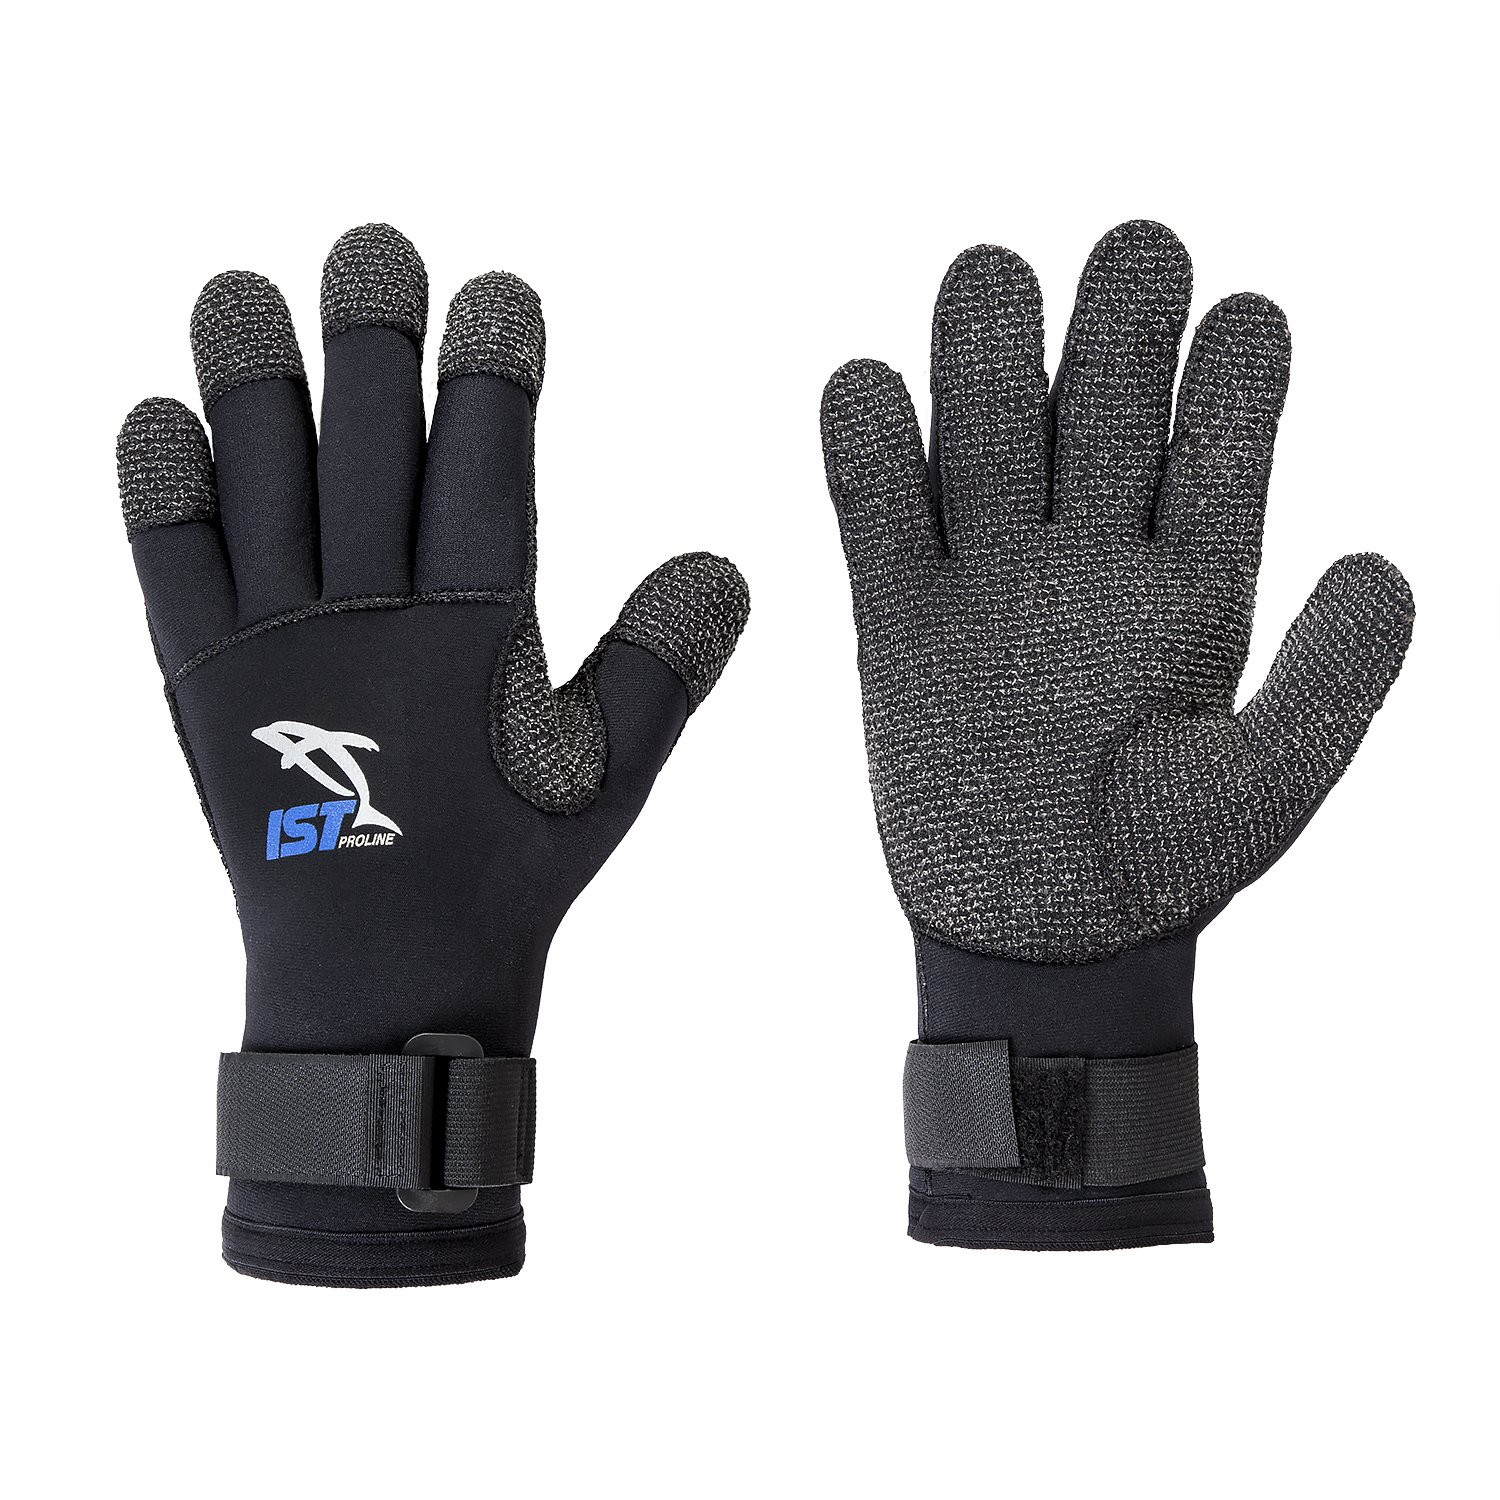 IST 3mm Kevlar Five Finger Gloves (Small) by IST